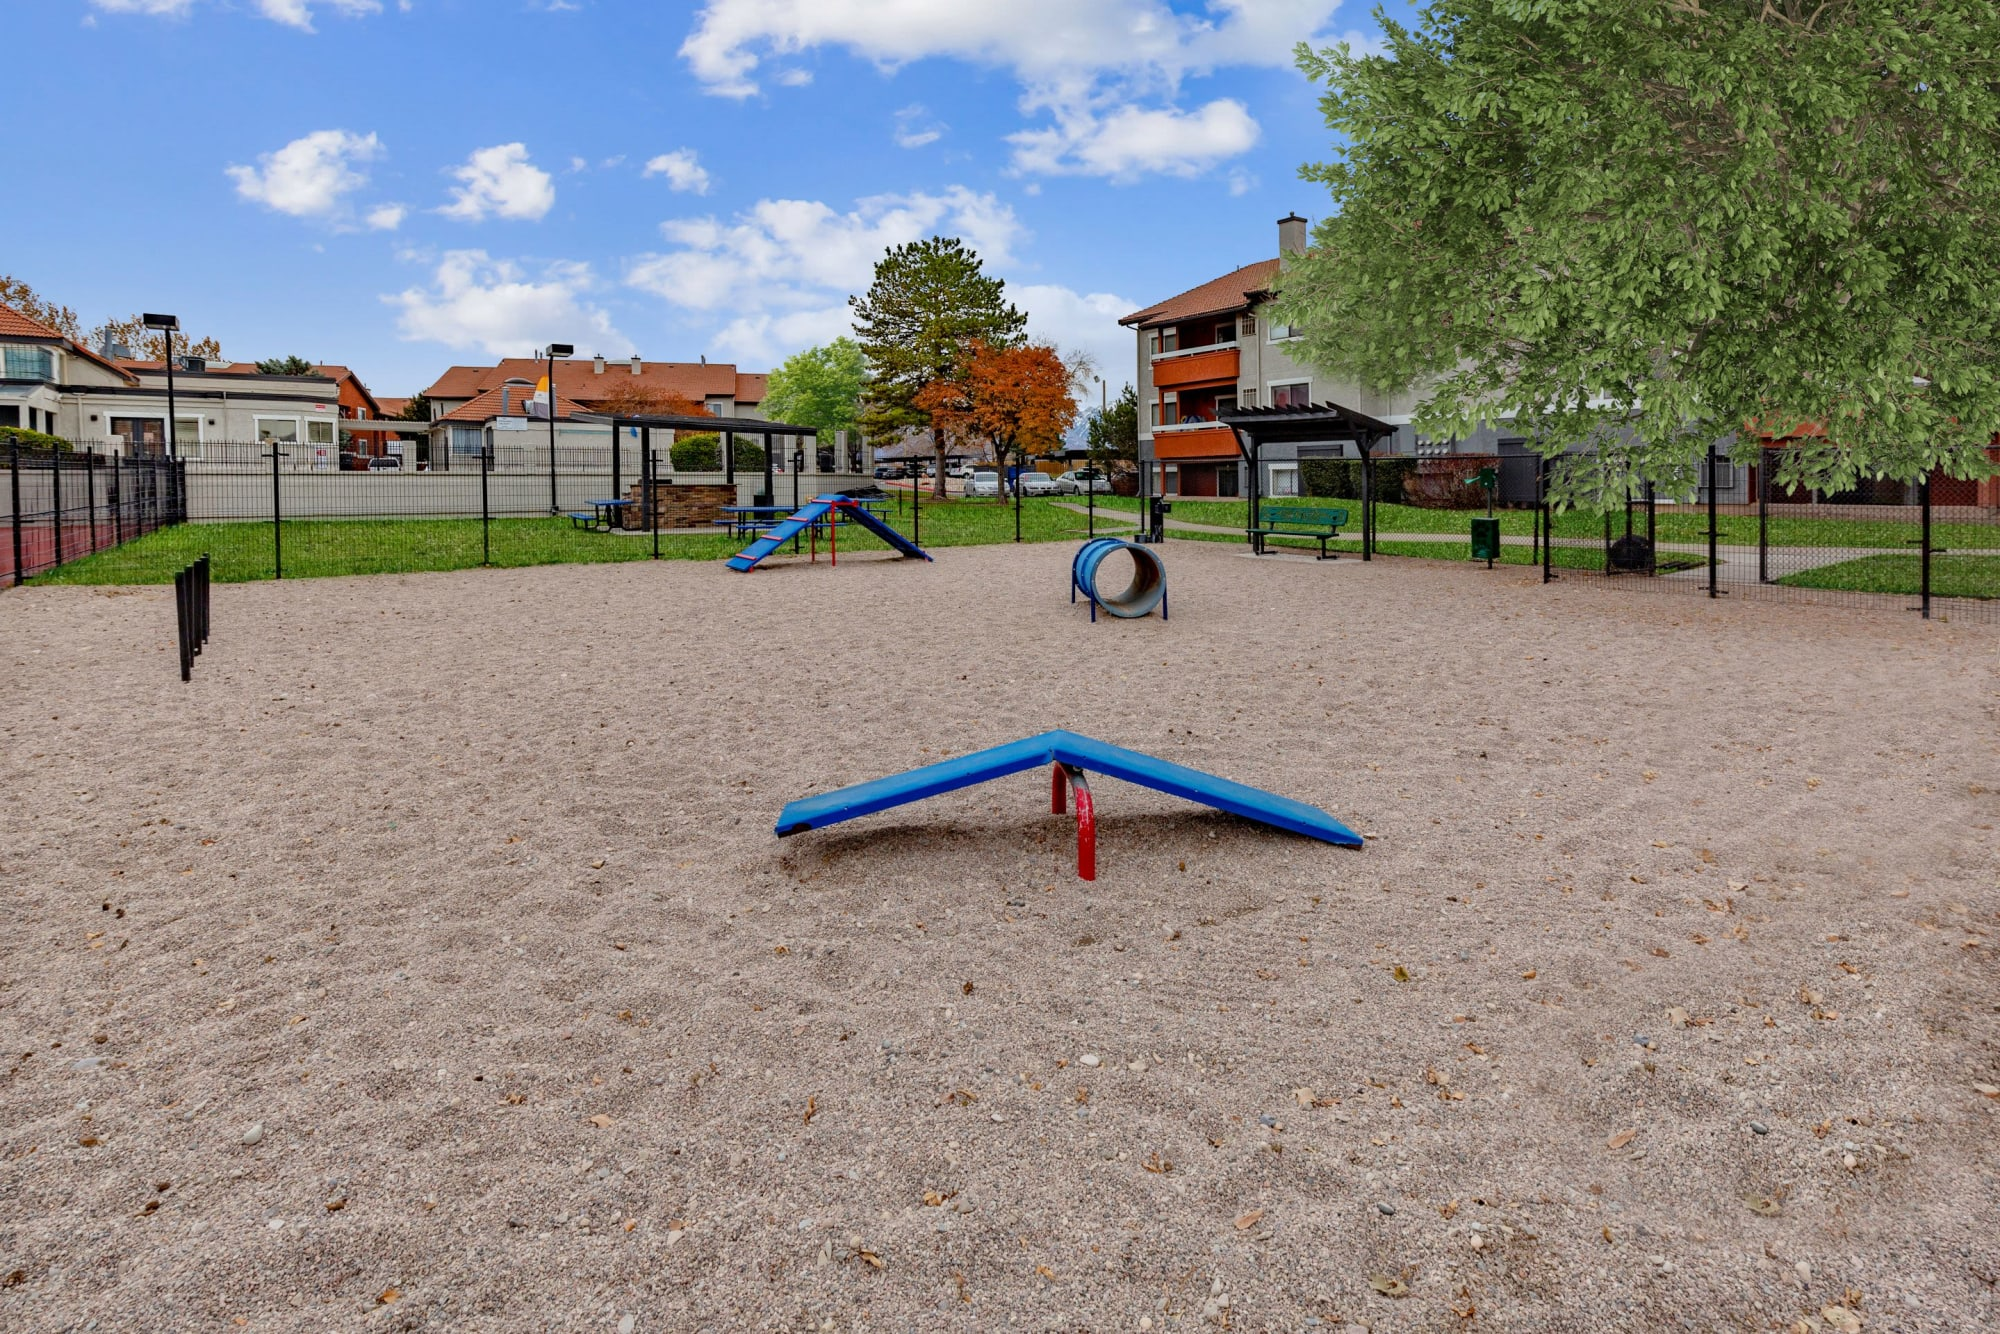 Off-leash dog park at Shadowbrook Apartments in West Valley City, Utah